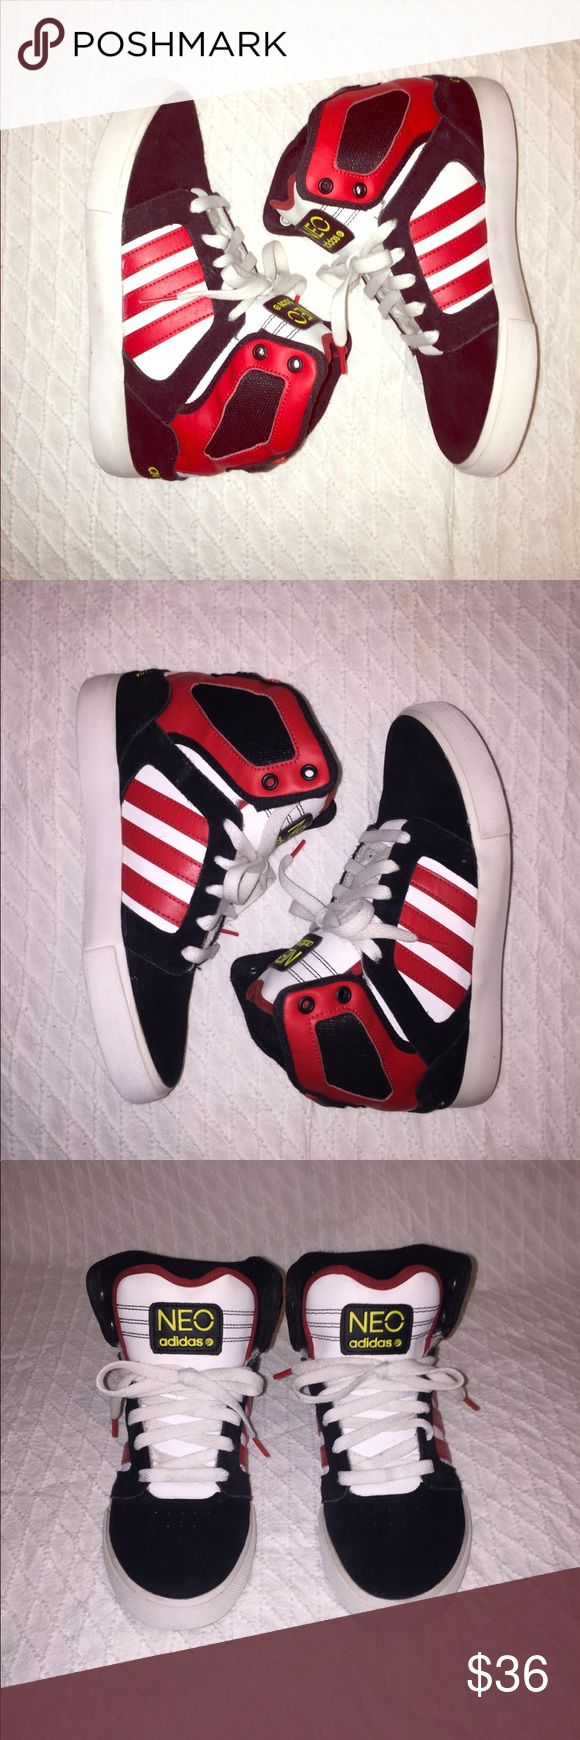 Adidas NEO High Tops Size 7 Adidas Neo High Tops in excellent pre owned condition refer to pictures They have no flaws super cute sneakers  They are a size 5 in boys which makes them a size 7 in women's  Can fit from a 6.6 to a tight 7.5 I would say without a doubt  Colors are white navy blue and red  Even the laces on them are in great condition Looking for a new loving home adidas Shoes Sneakers